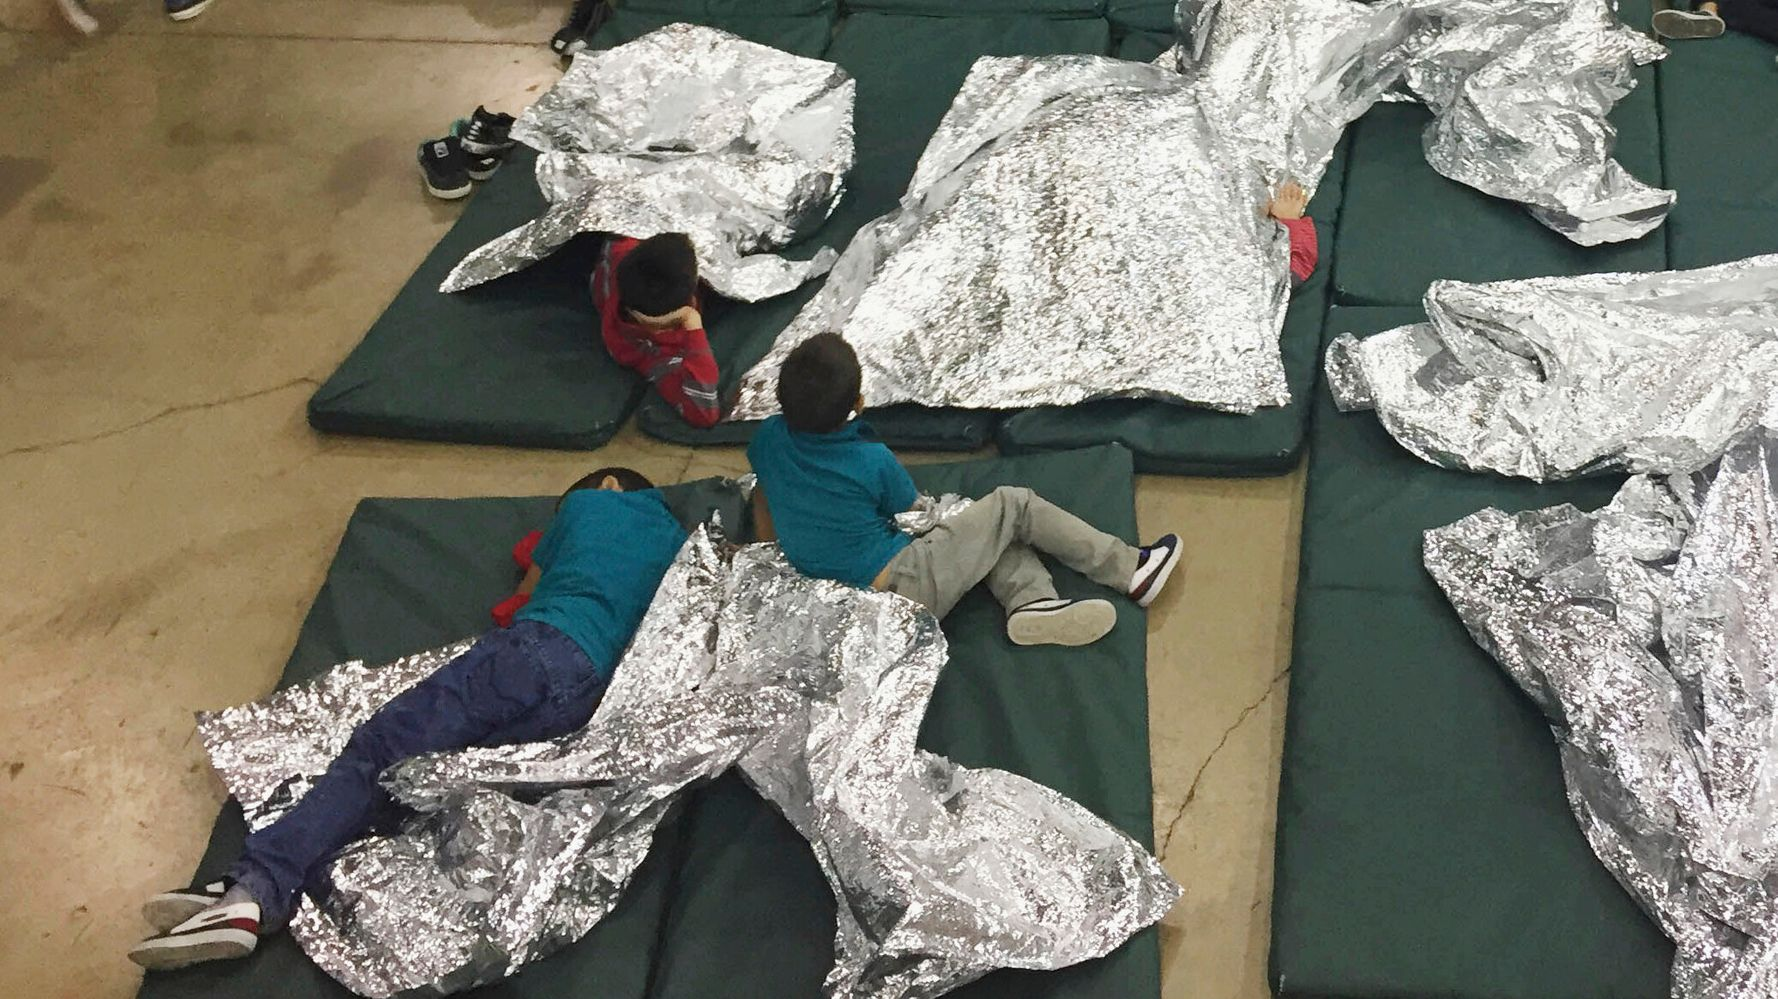 Texas Kids Werent Kept Out Of Special >> 4 Severely Ill Migrant Toddlers Hospitalized After Lawyers